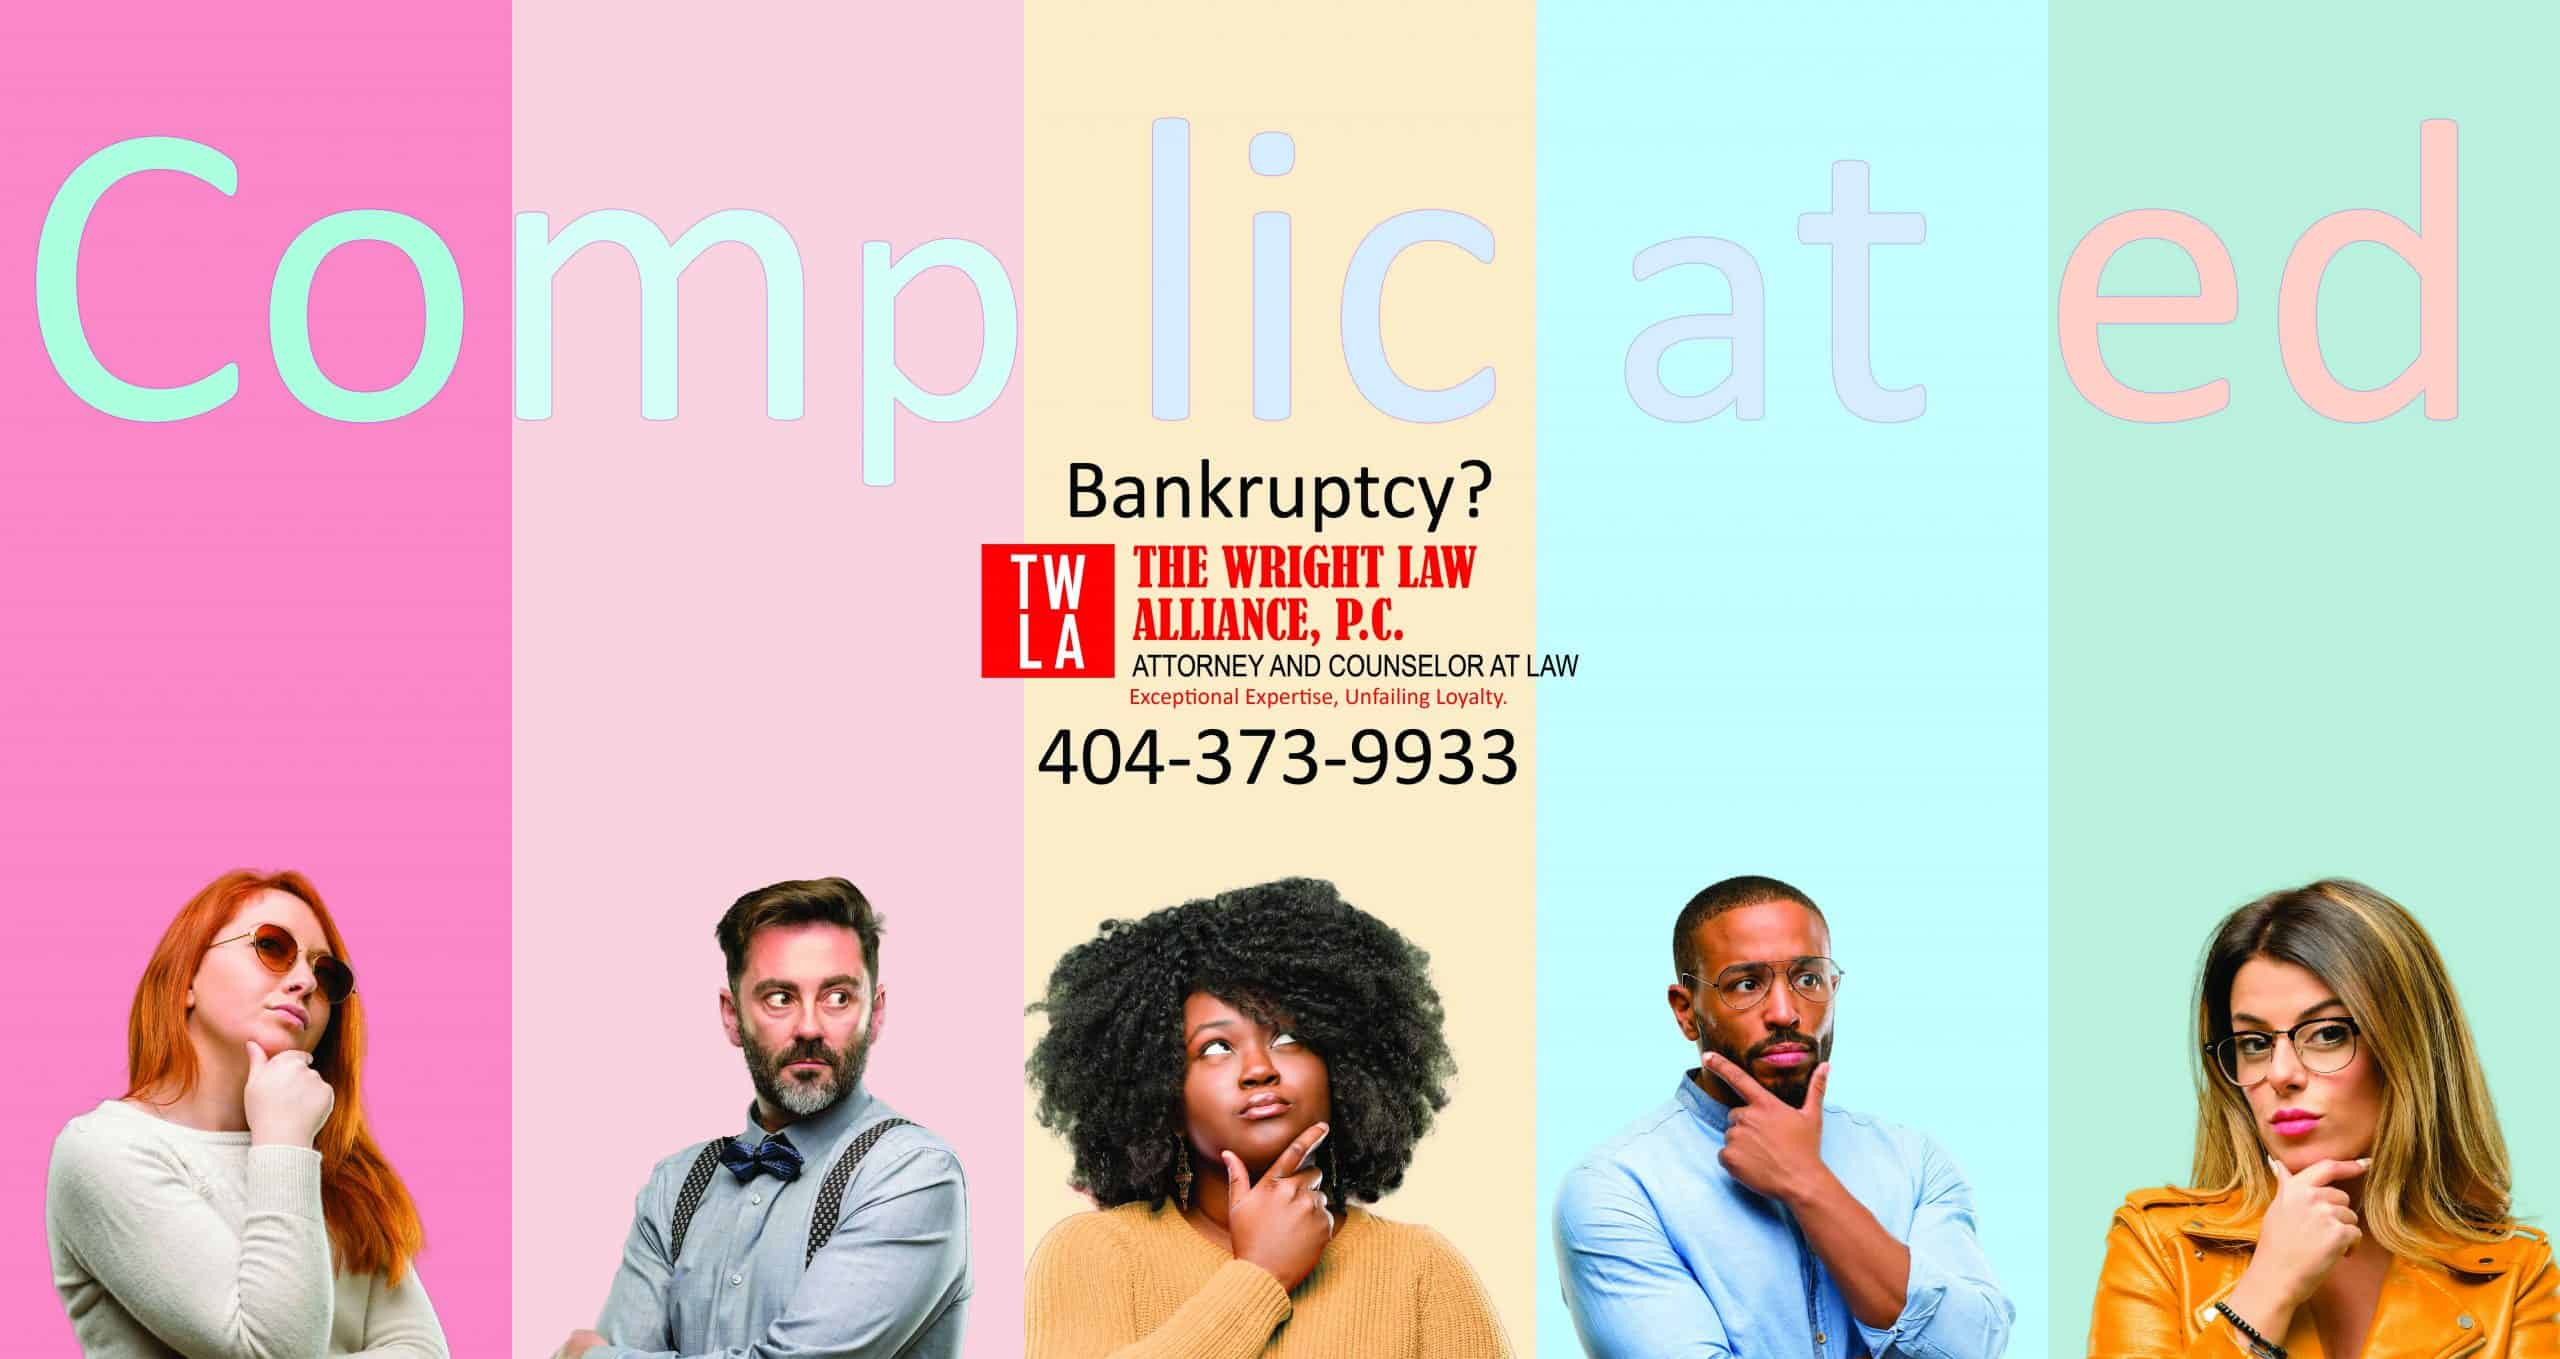 complicated-bankruptcy-wright-law-alliance